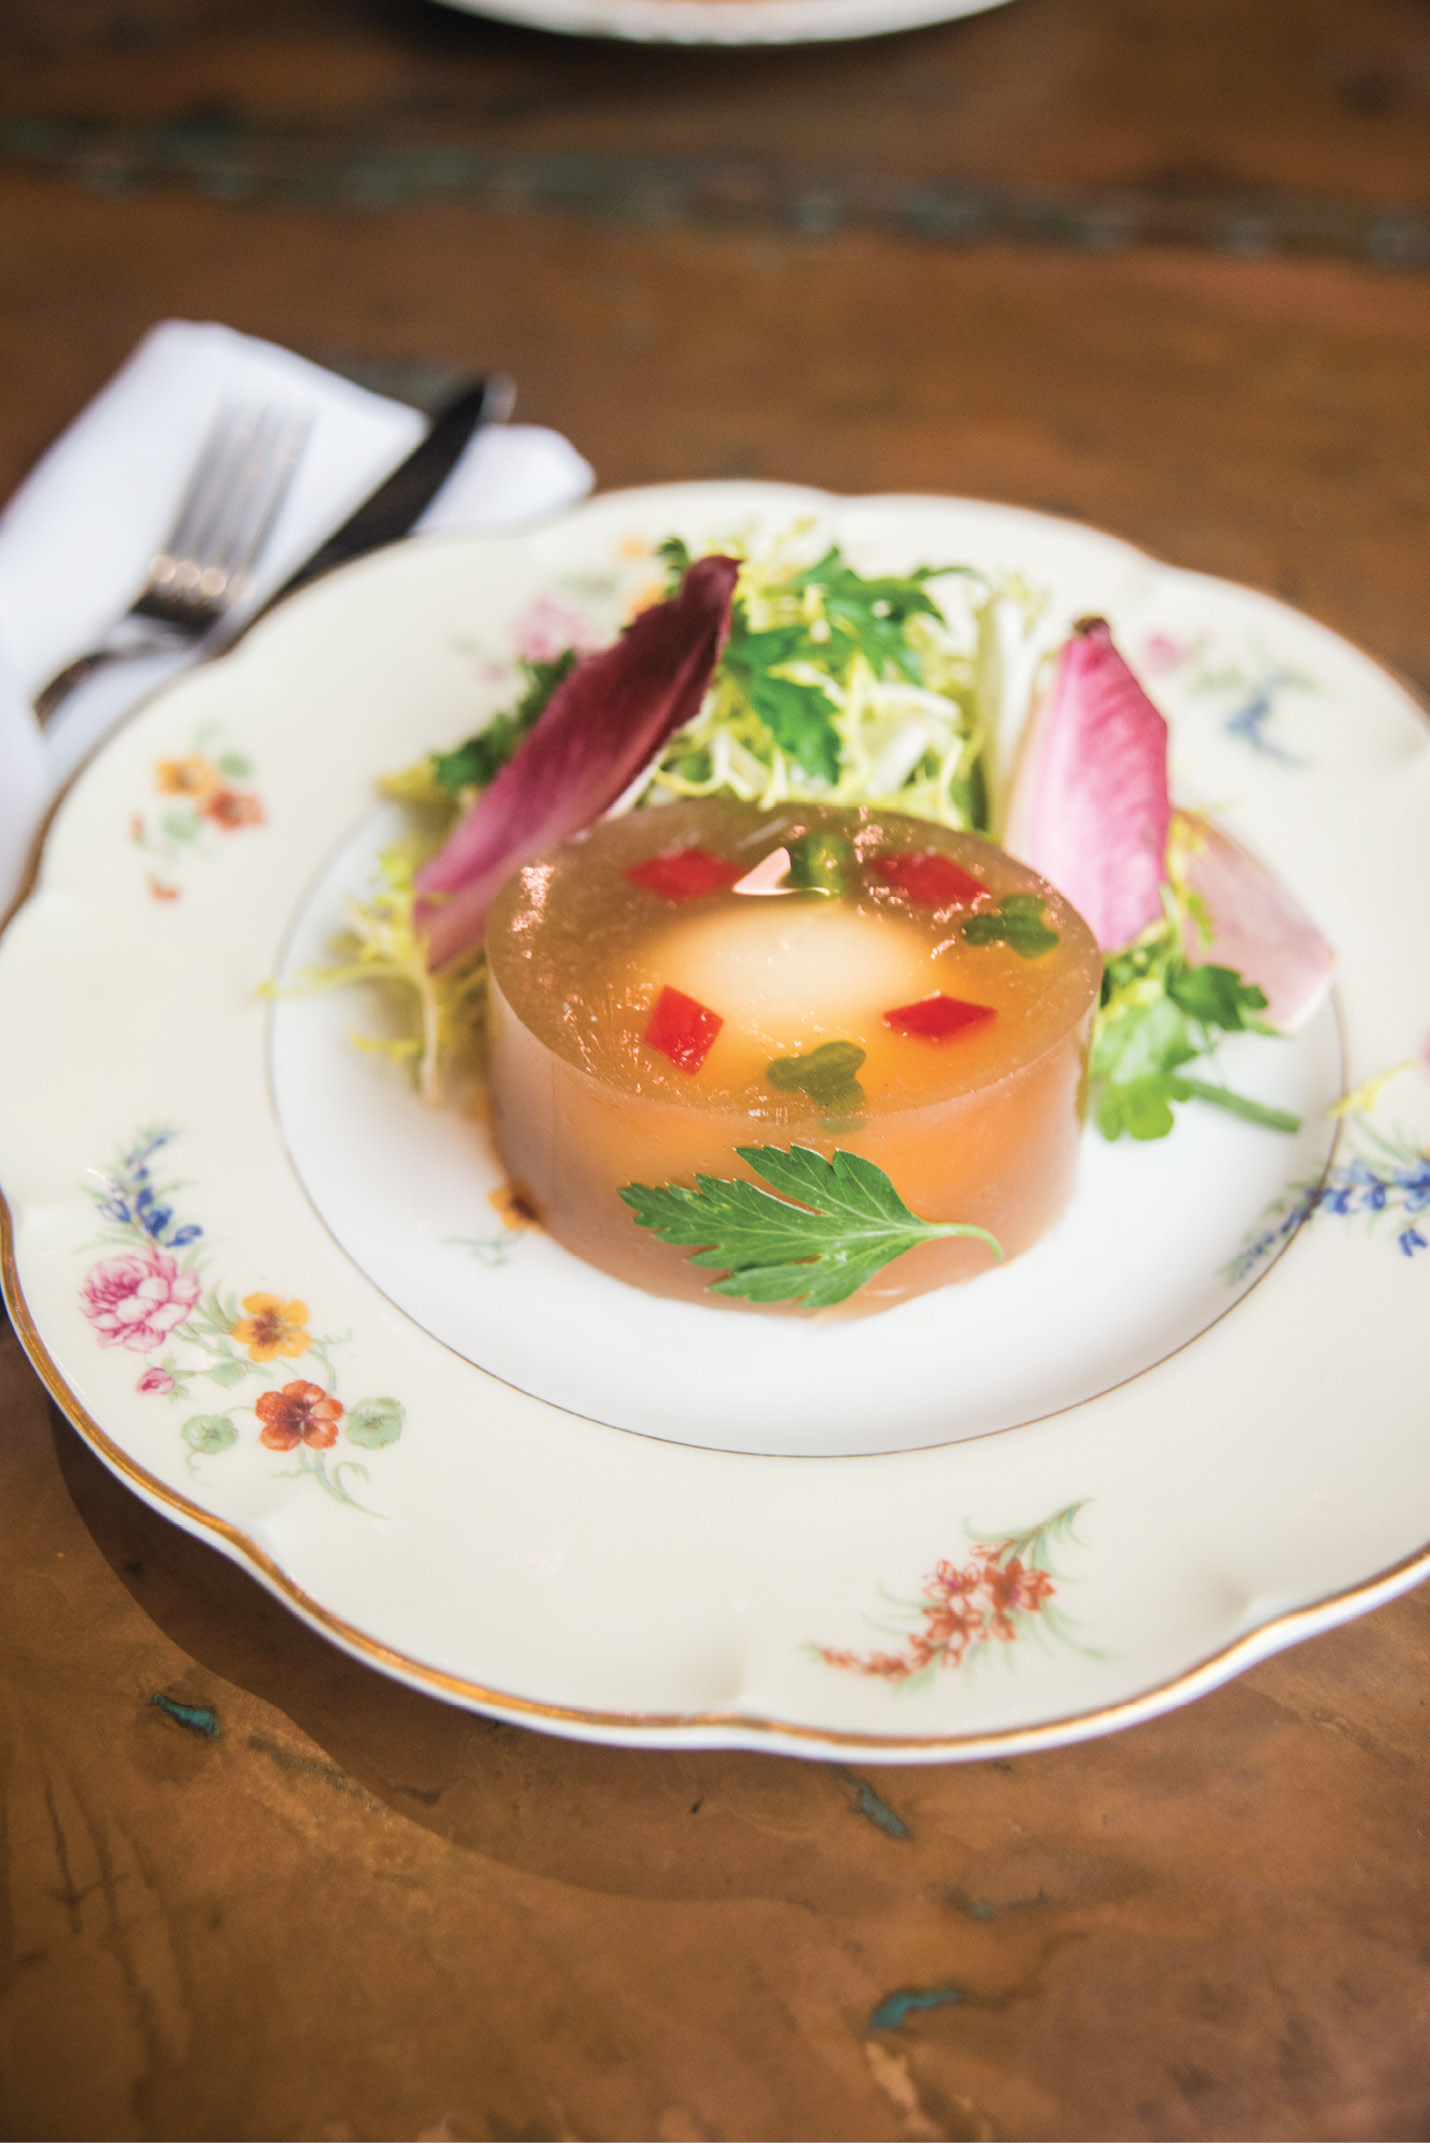 Suspended Animation: A soft-boiled egg afloat in a chicken-stock aspic gains playful panache from red-pepper diamonds and cucumber clubs in the oeufs en gelée appetizer.